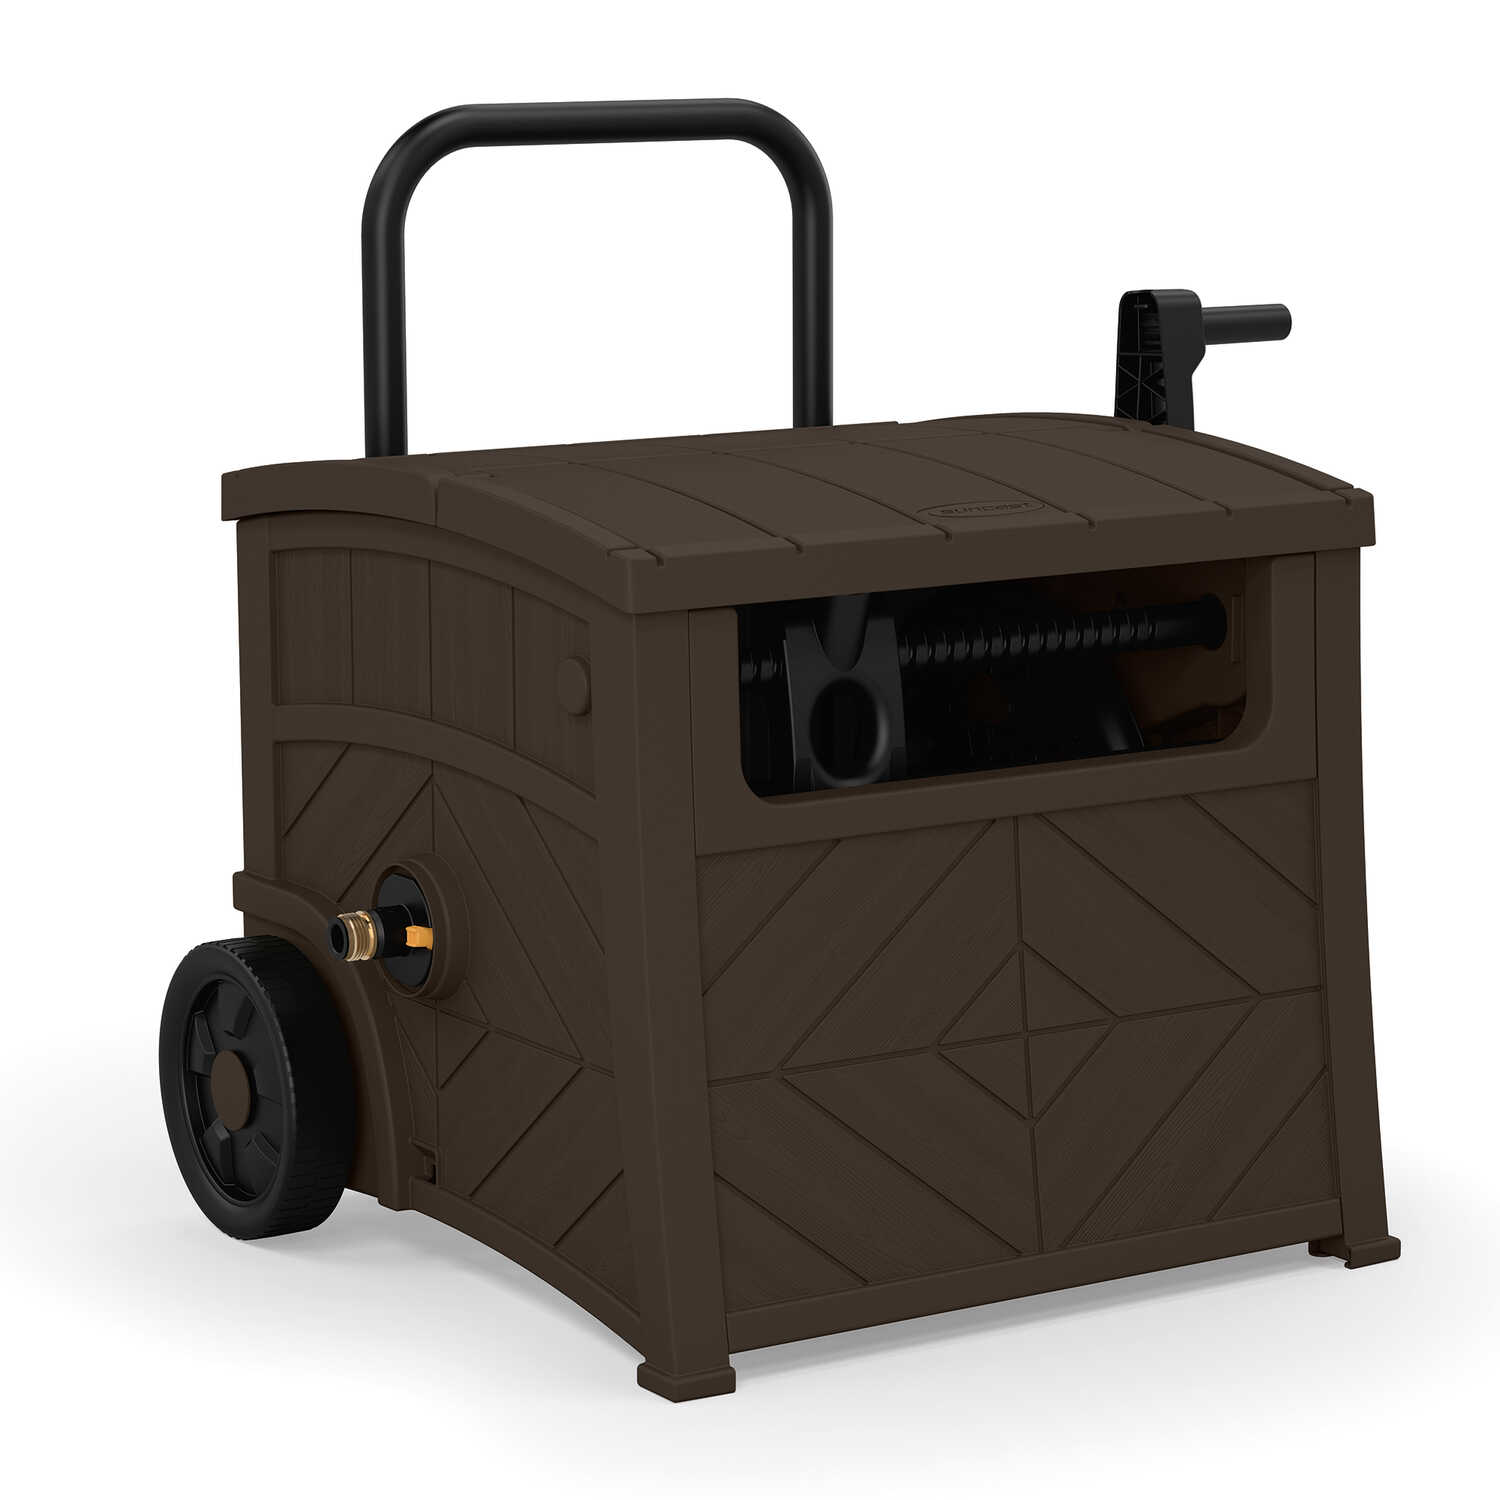 Suncast  150 ft. Free Standing  Hideaway  Brown  Hose Cart with Hose Guide